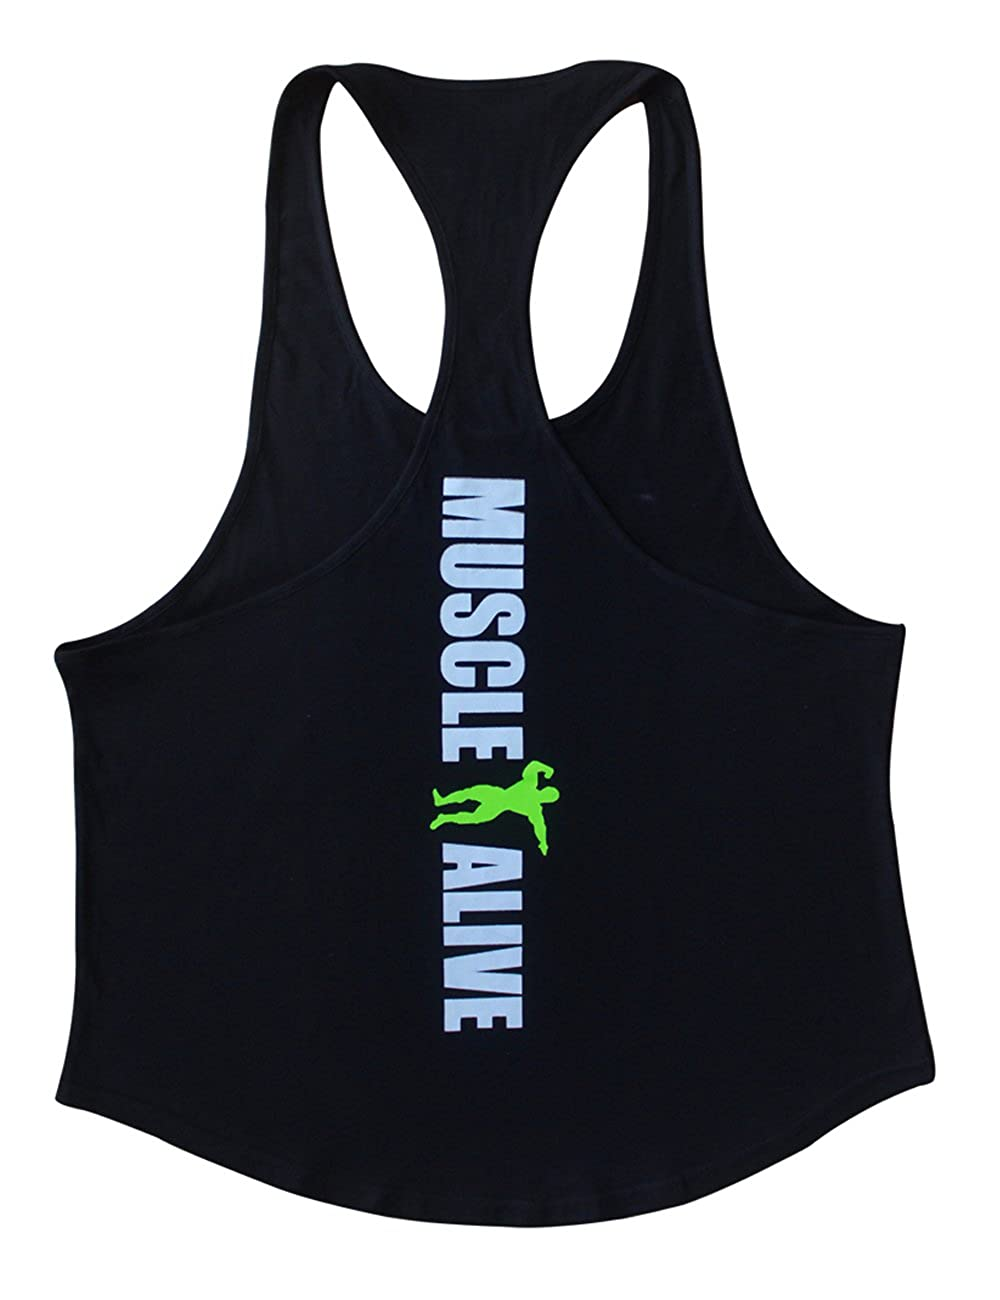 377066581ecff3 Amazon.com  MUSCLE ALIVE Mens Bodybuilding Stringer Tank Tops Cotton  Racerback Arch Hem  Clothing